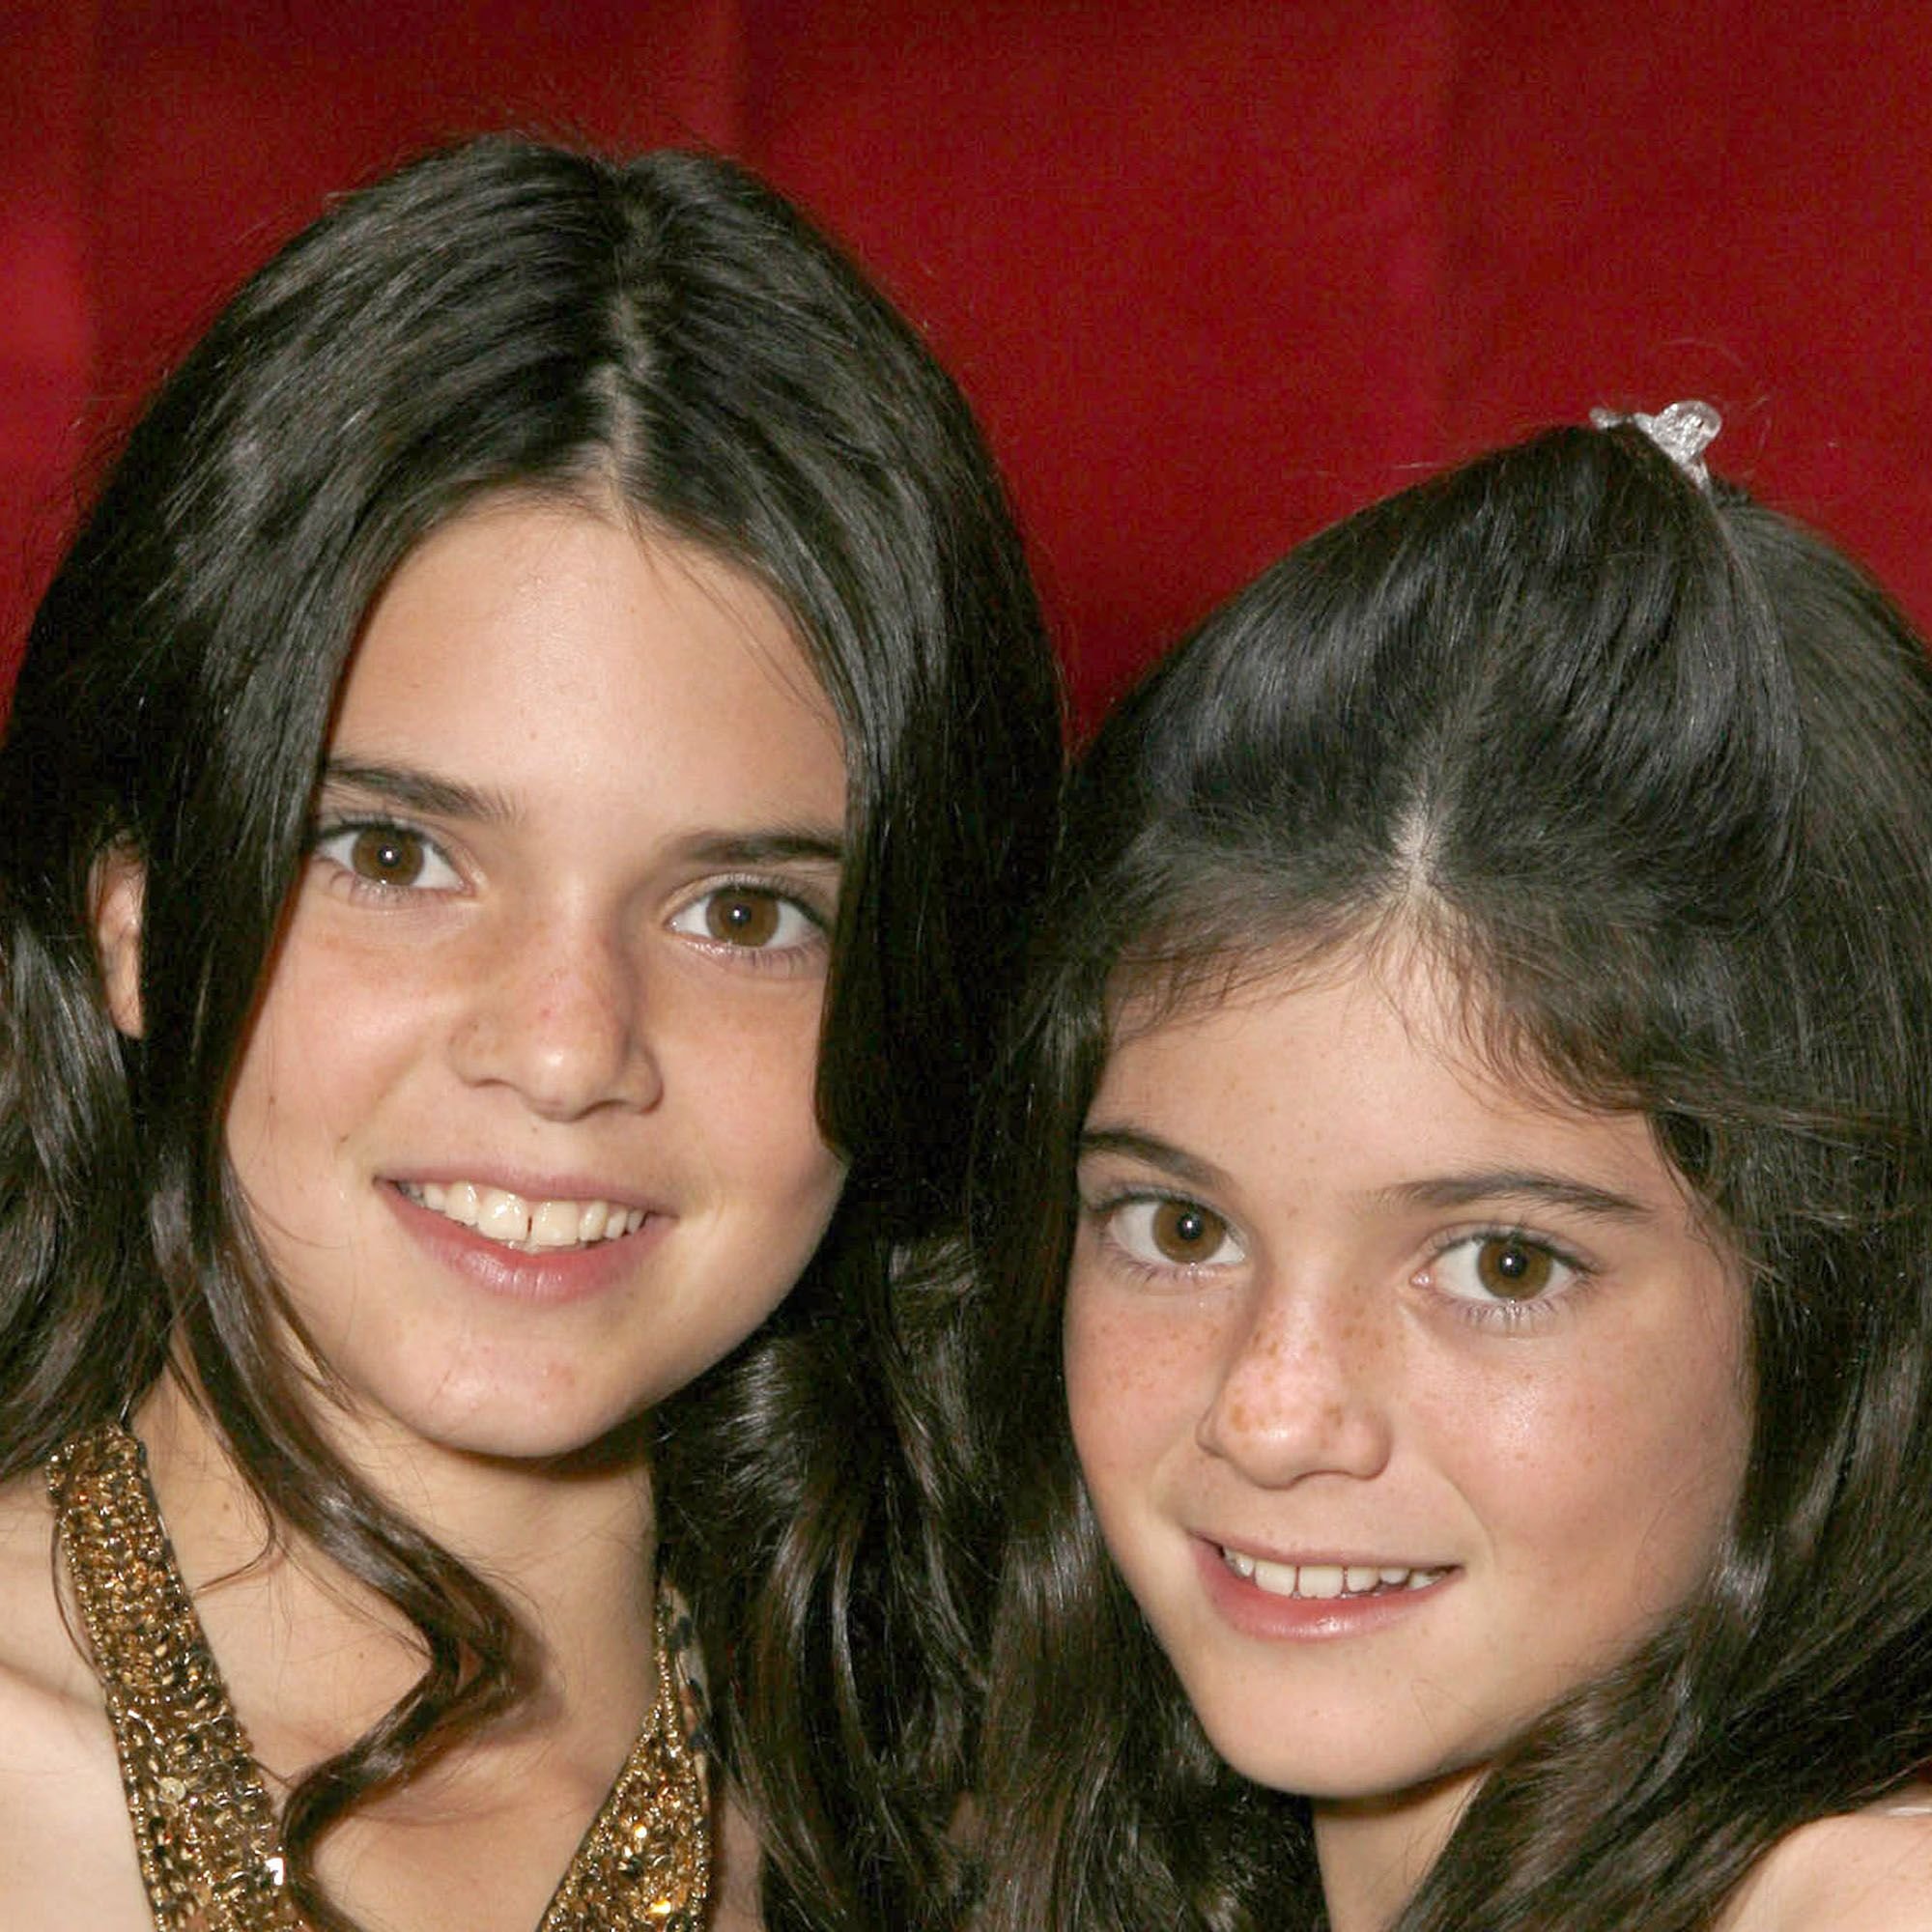 """AGOURA HILLS, CA - OCTOBER 16:  Kendall Jenner and Kylie Jenner pose for a photo at the """"Keeping Up With the Kardashians"""" viewing party at Chapter 8 Restaurant on October 16, 2007 in Agoura Hills, California.  (Photo by Jeff Vespa/WireImage)  *** Local Caption ***"""